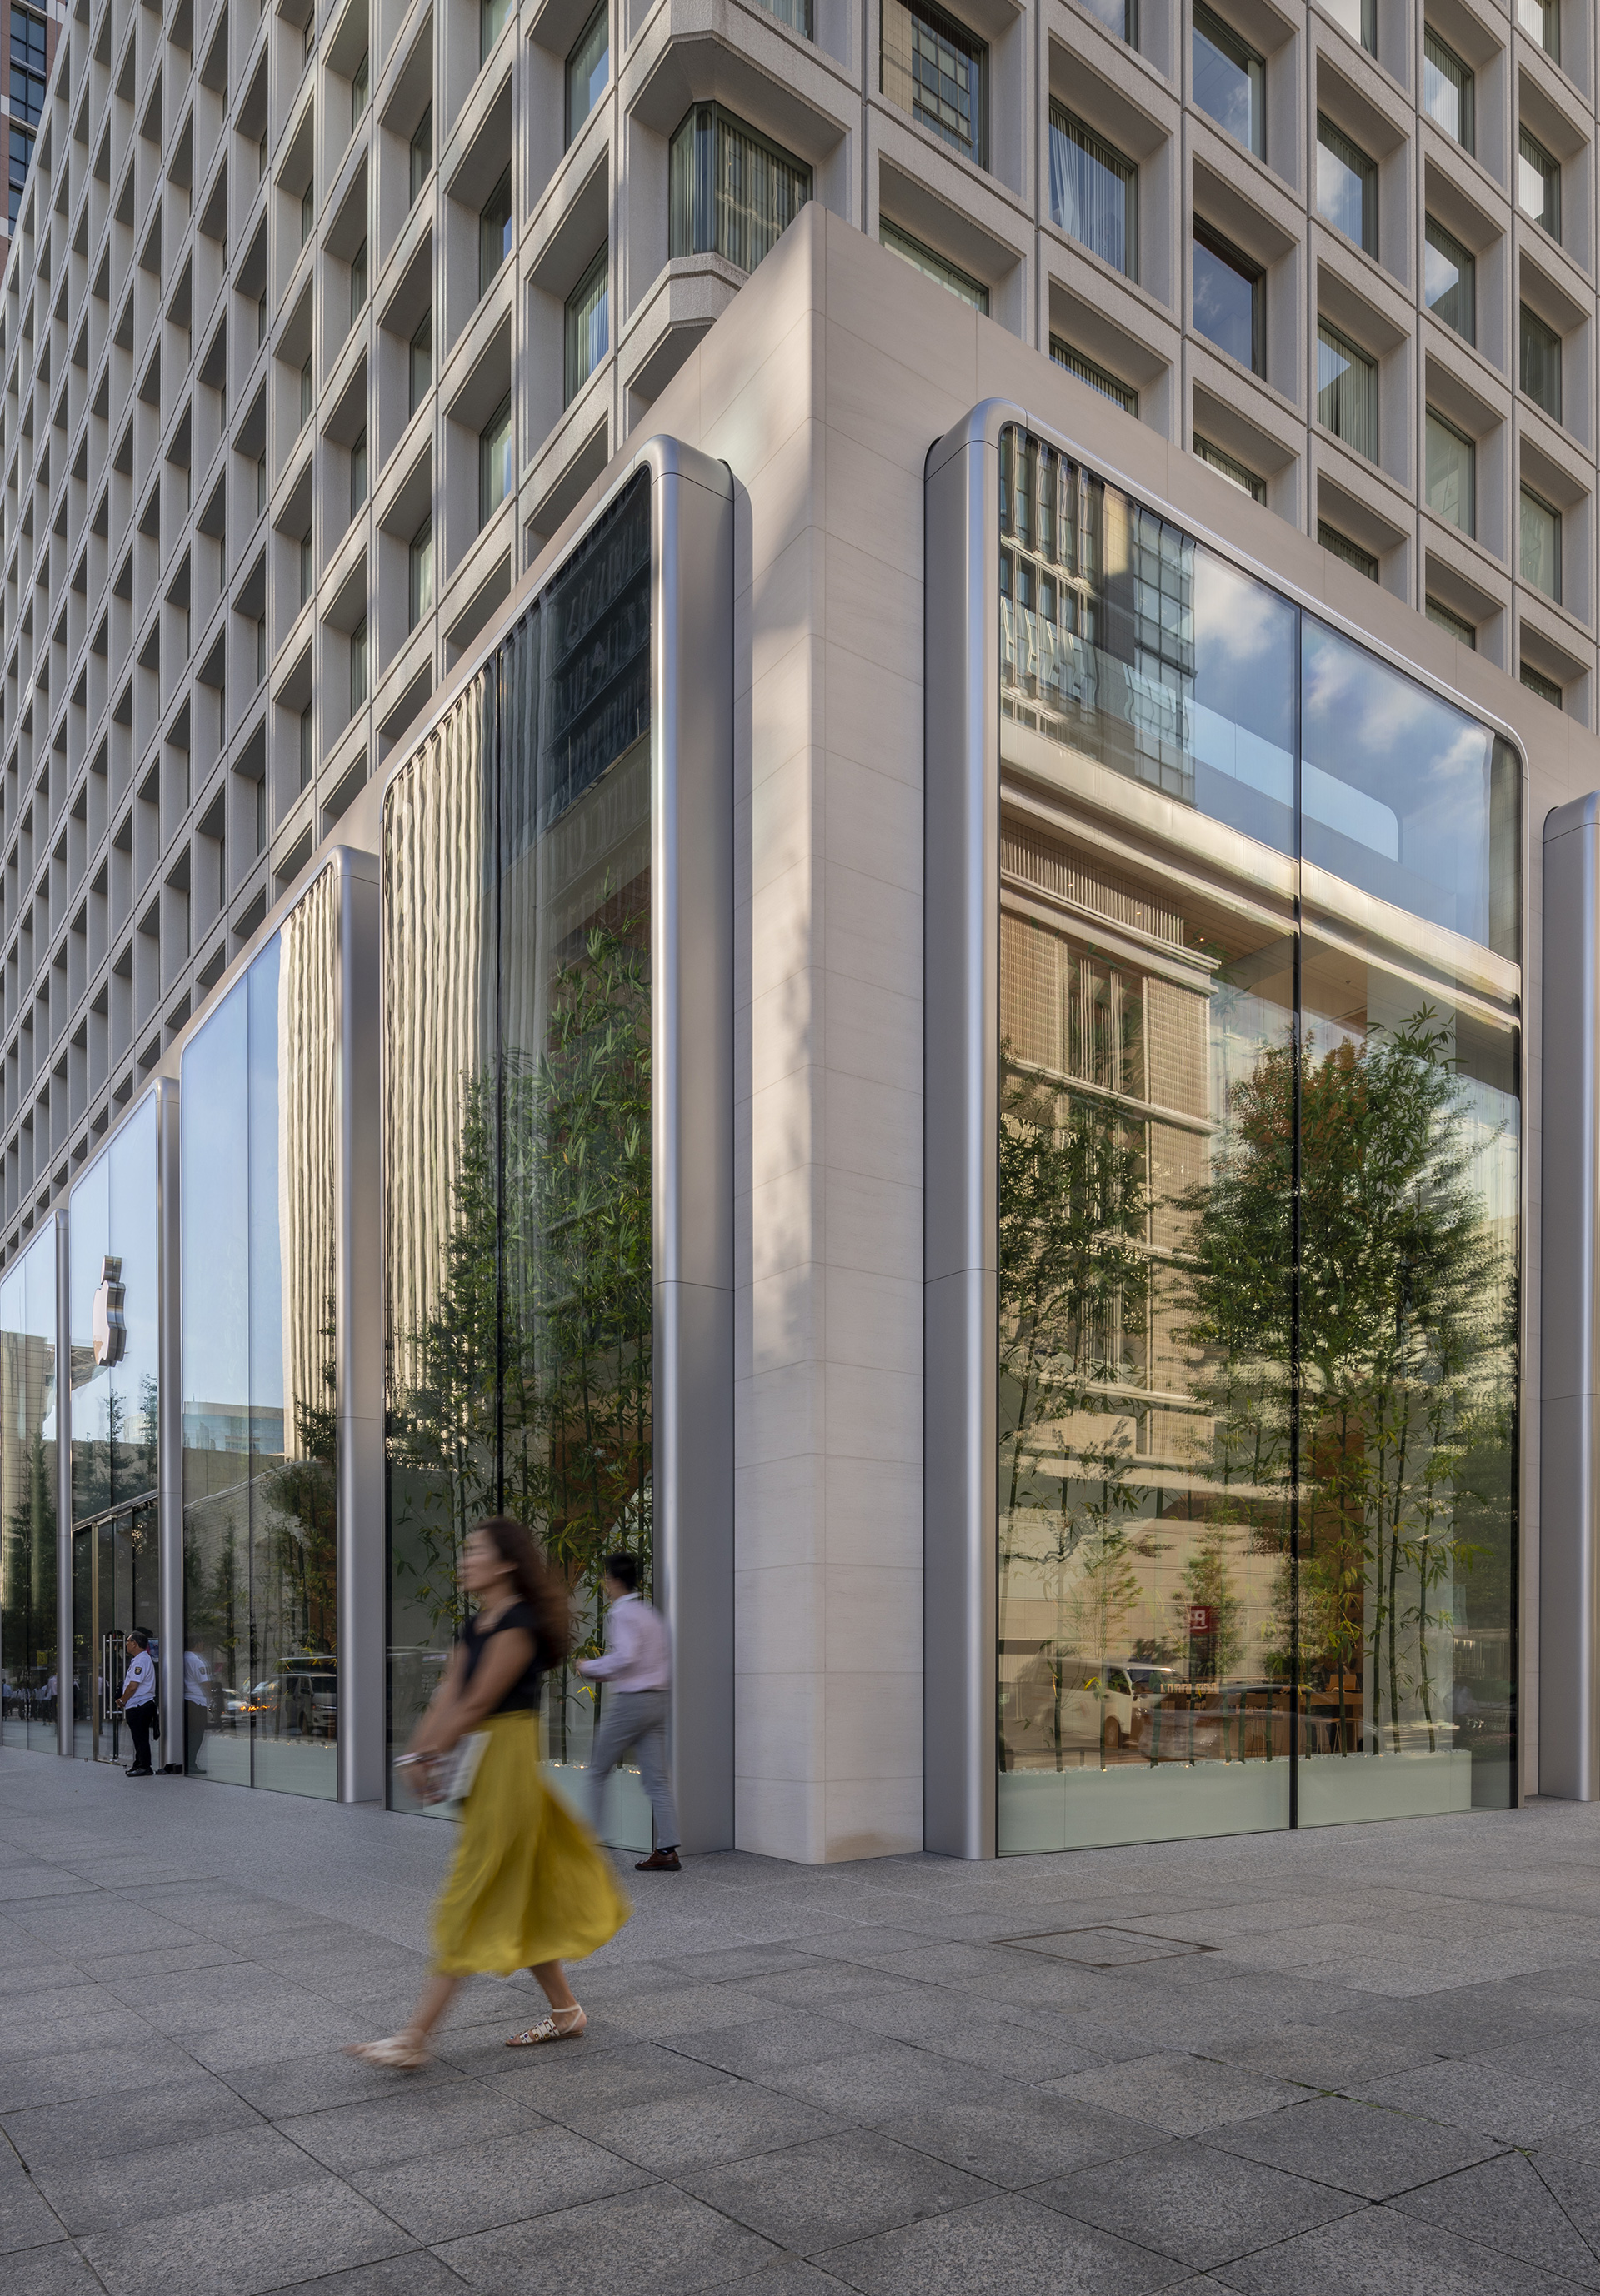 The building is rendered in white plaster | Apple Marunouchi | Foster + Partners | STIR